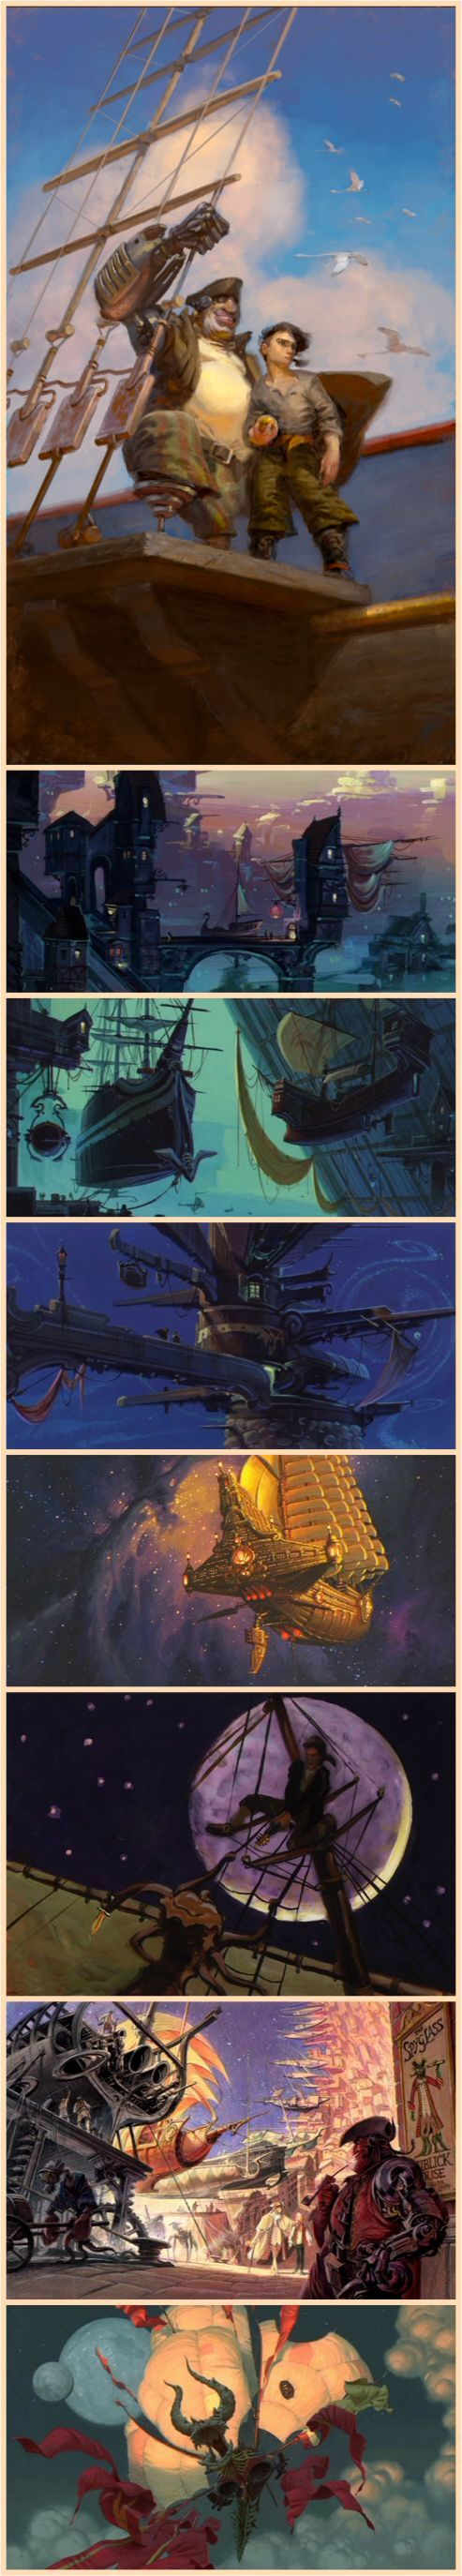 Treasure Planet concept art <3 <3